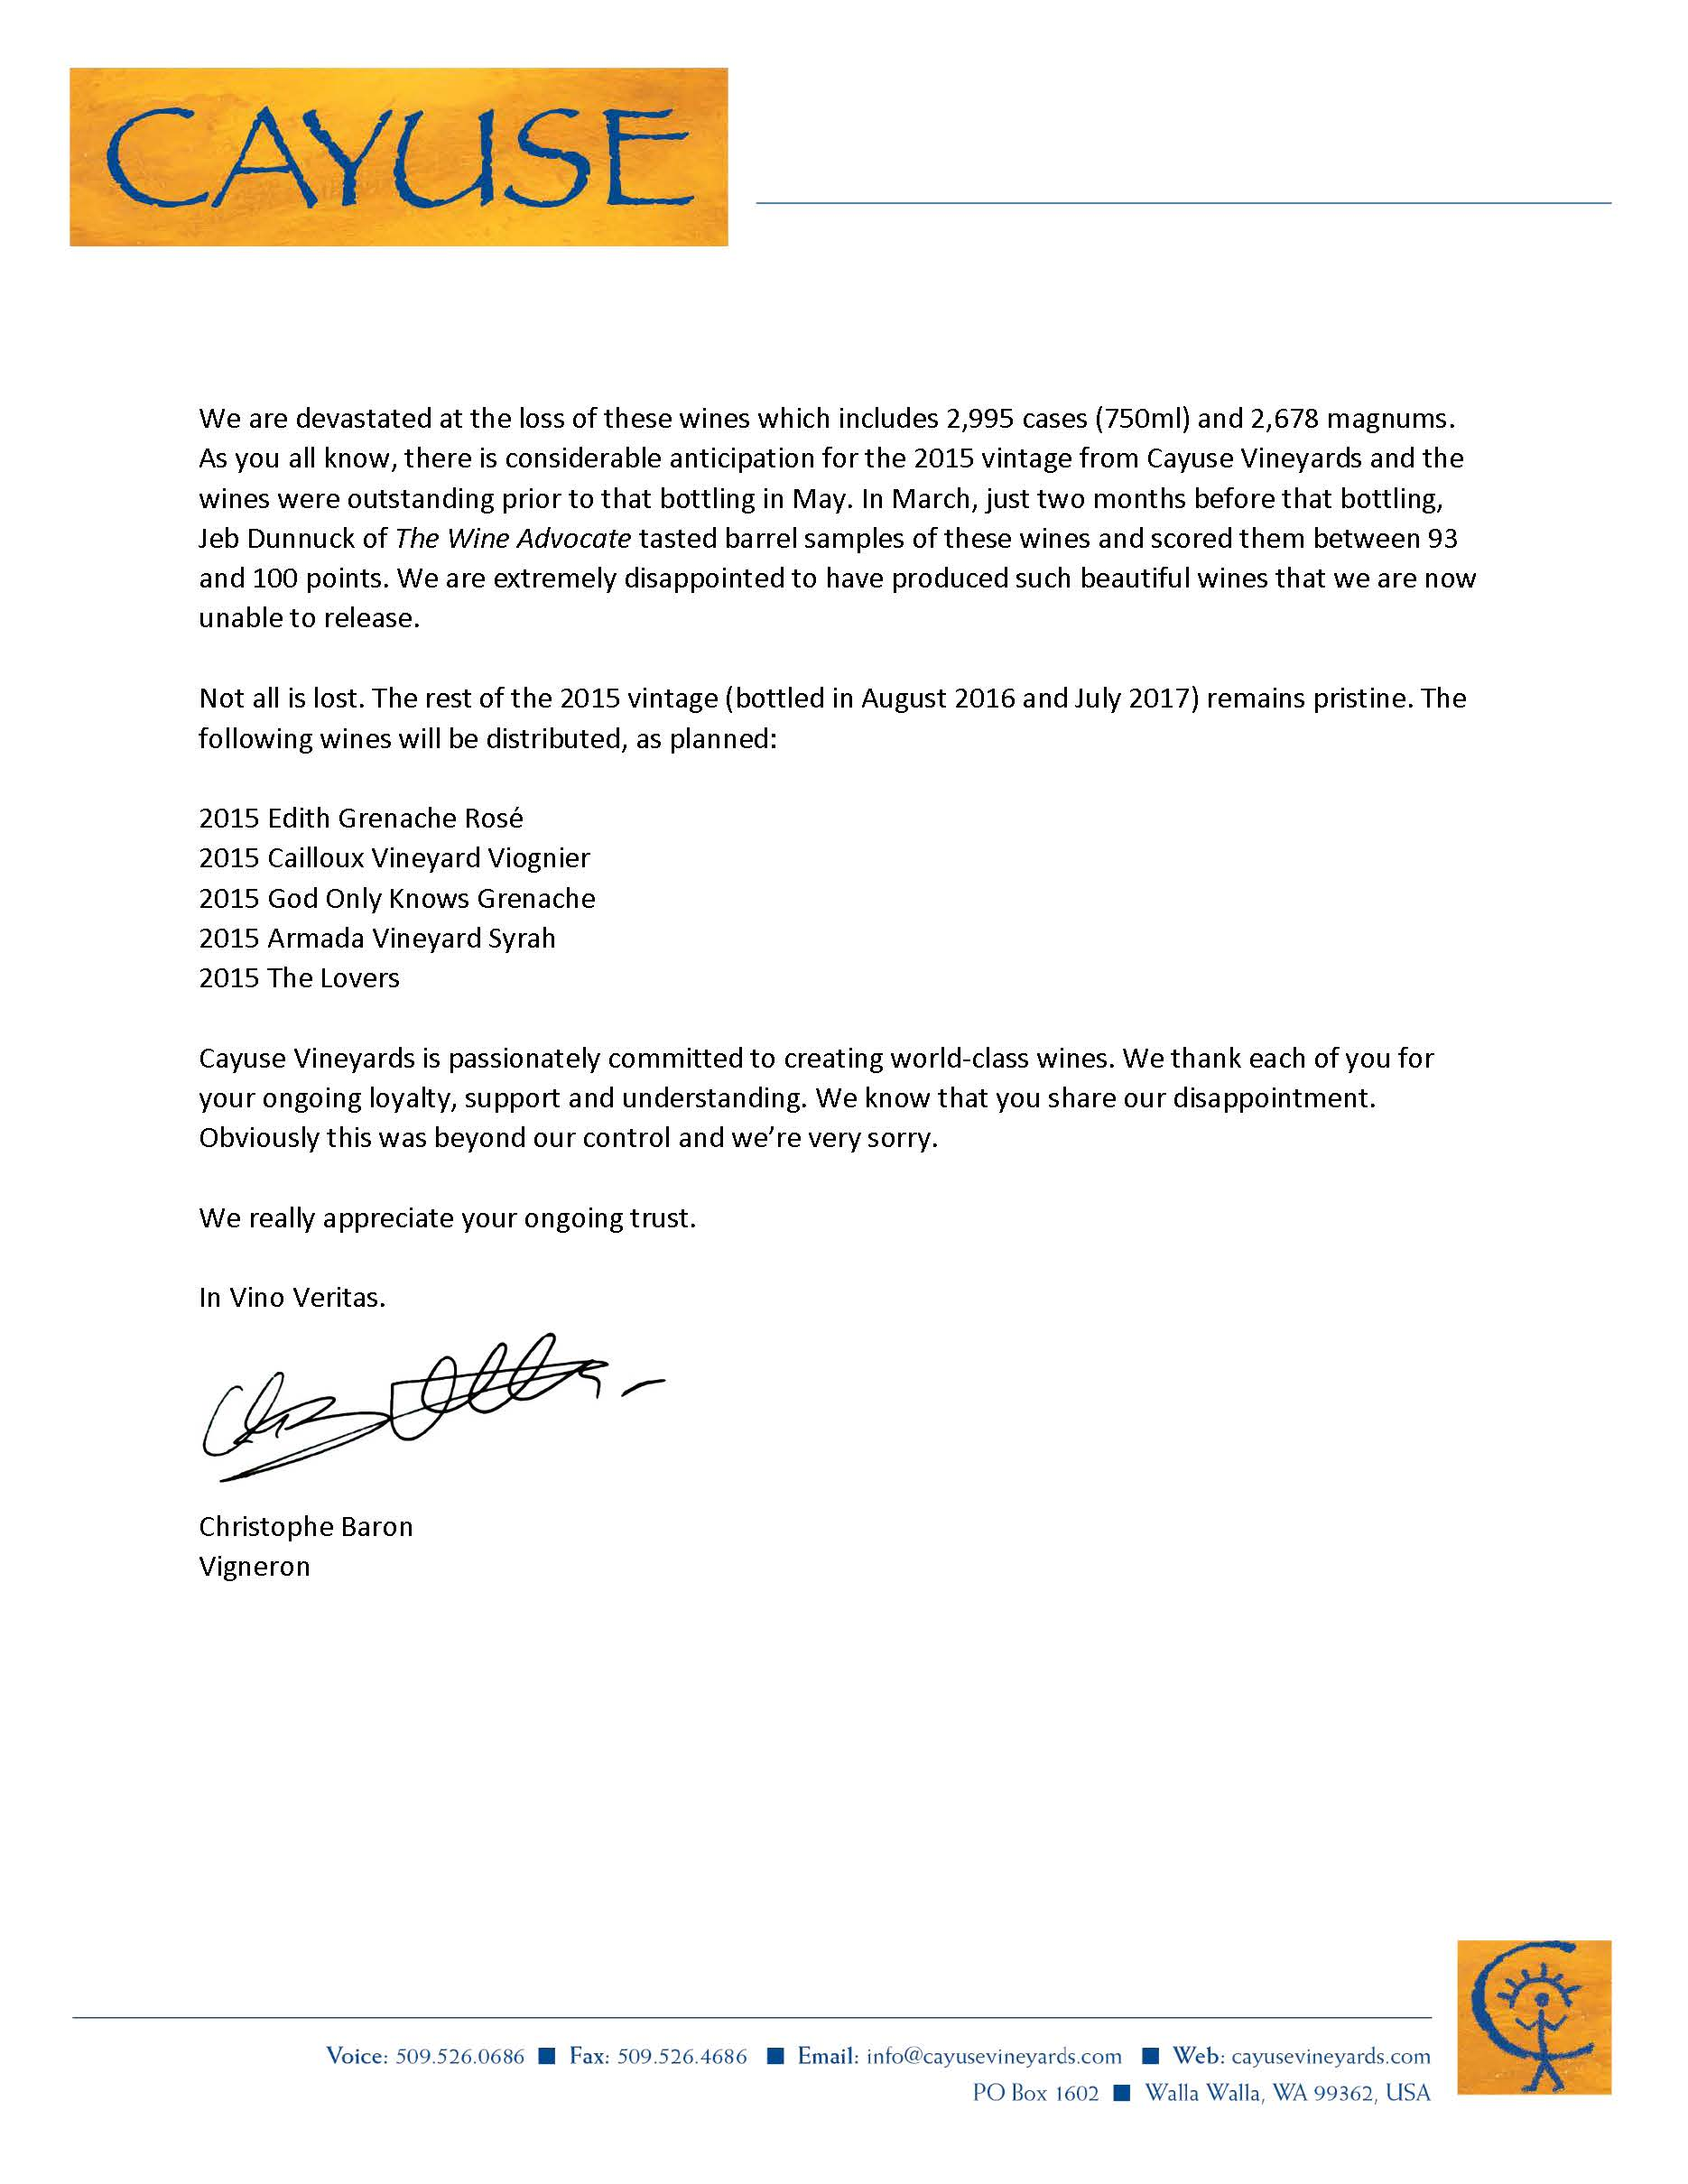 Cayuse Letter 102417 Wholesale_Page_2.jpg